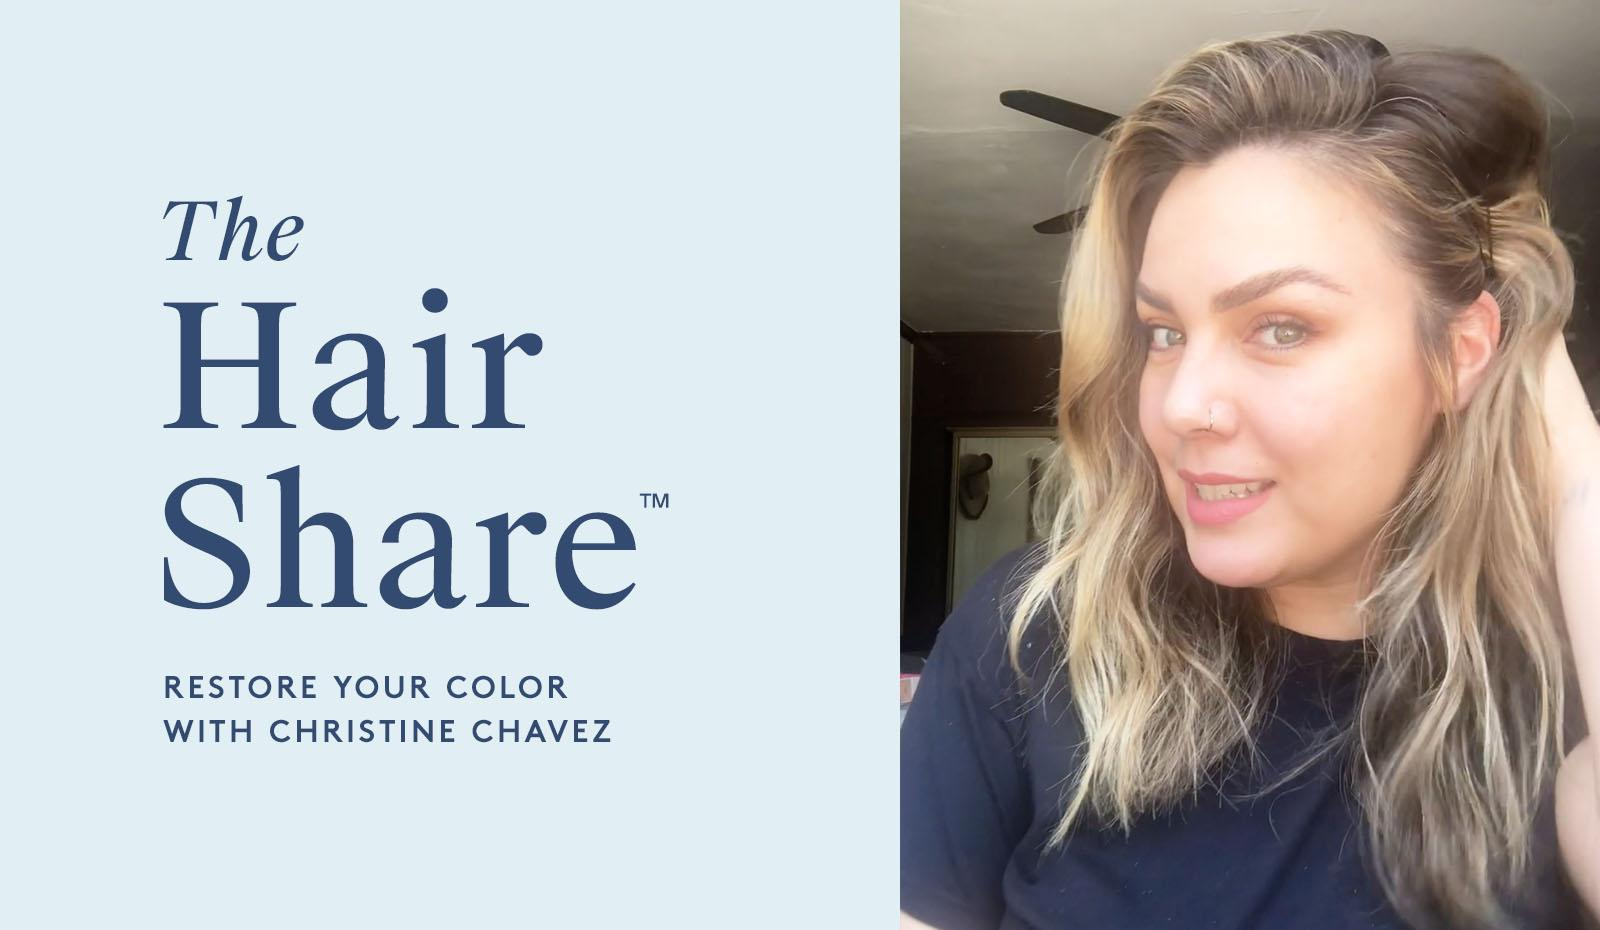 The Hair Share®: Restore Your Color with Christine Chavez